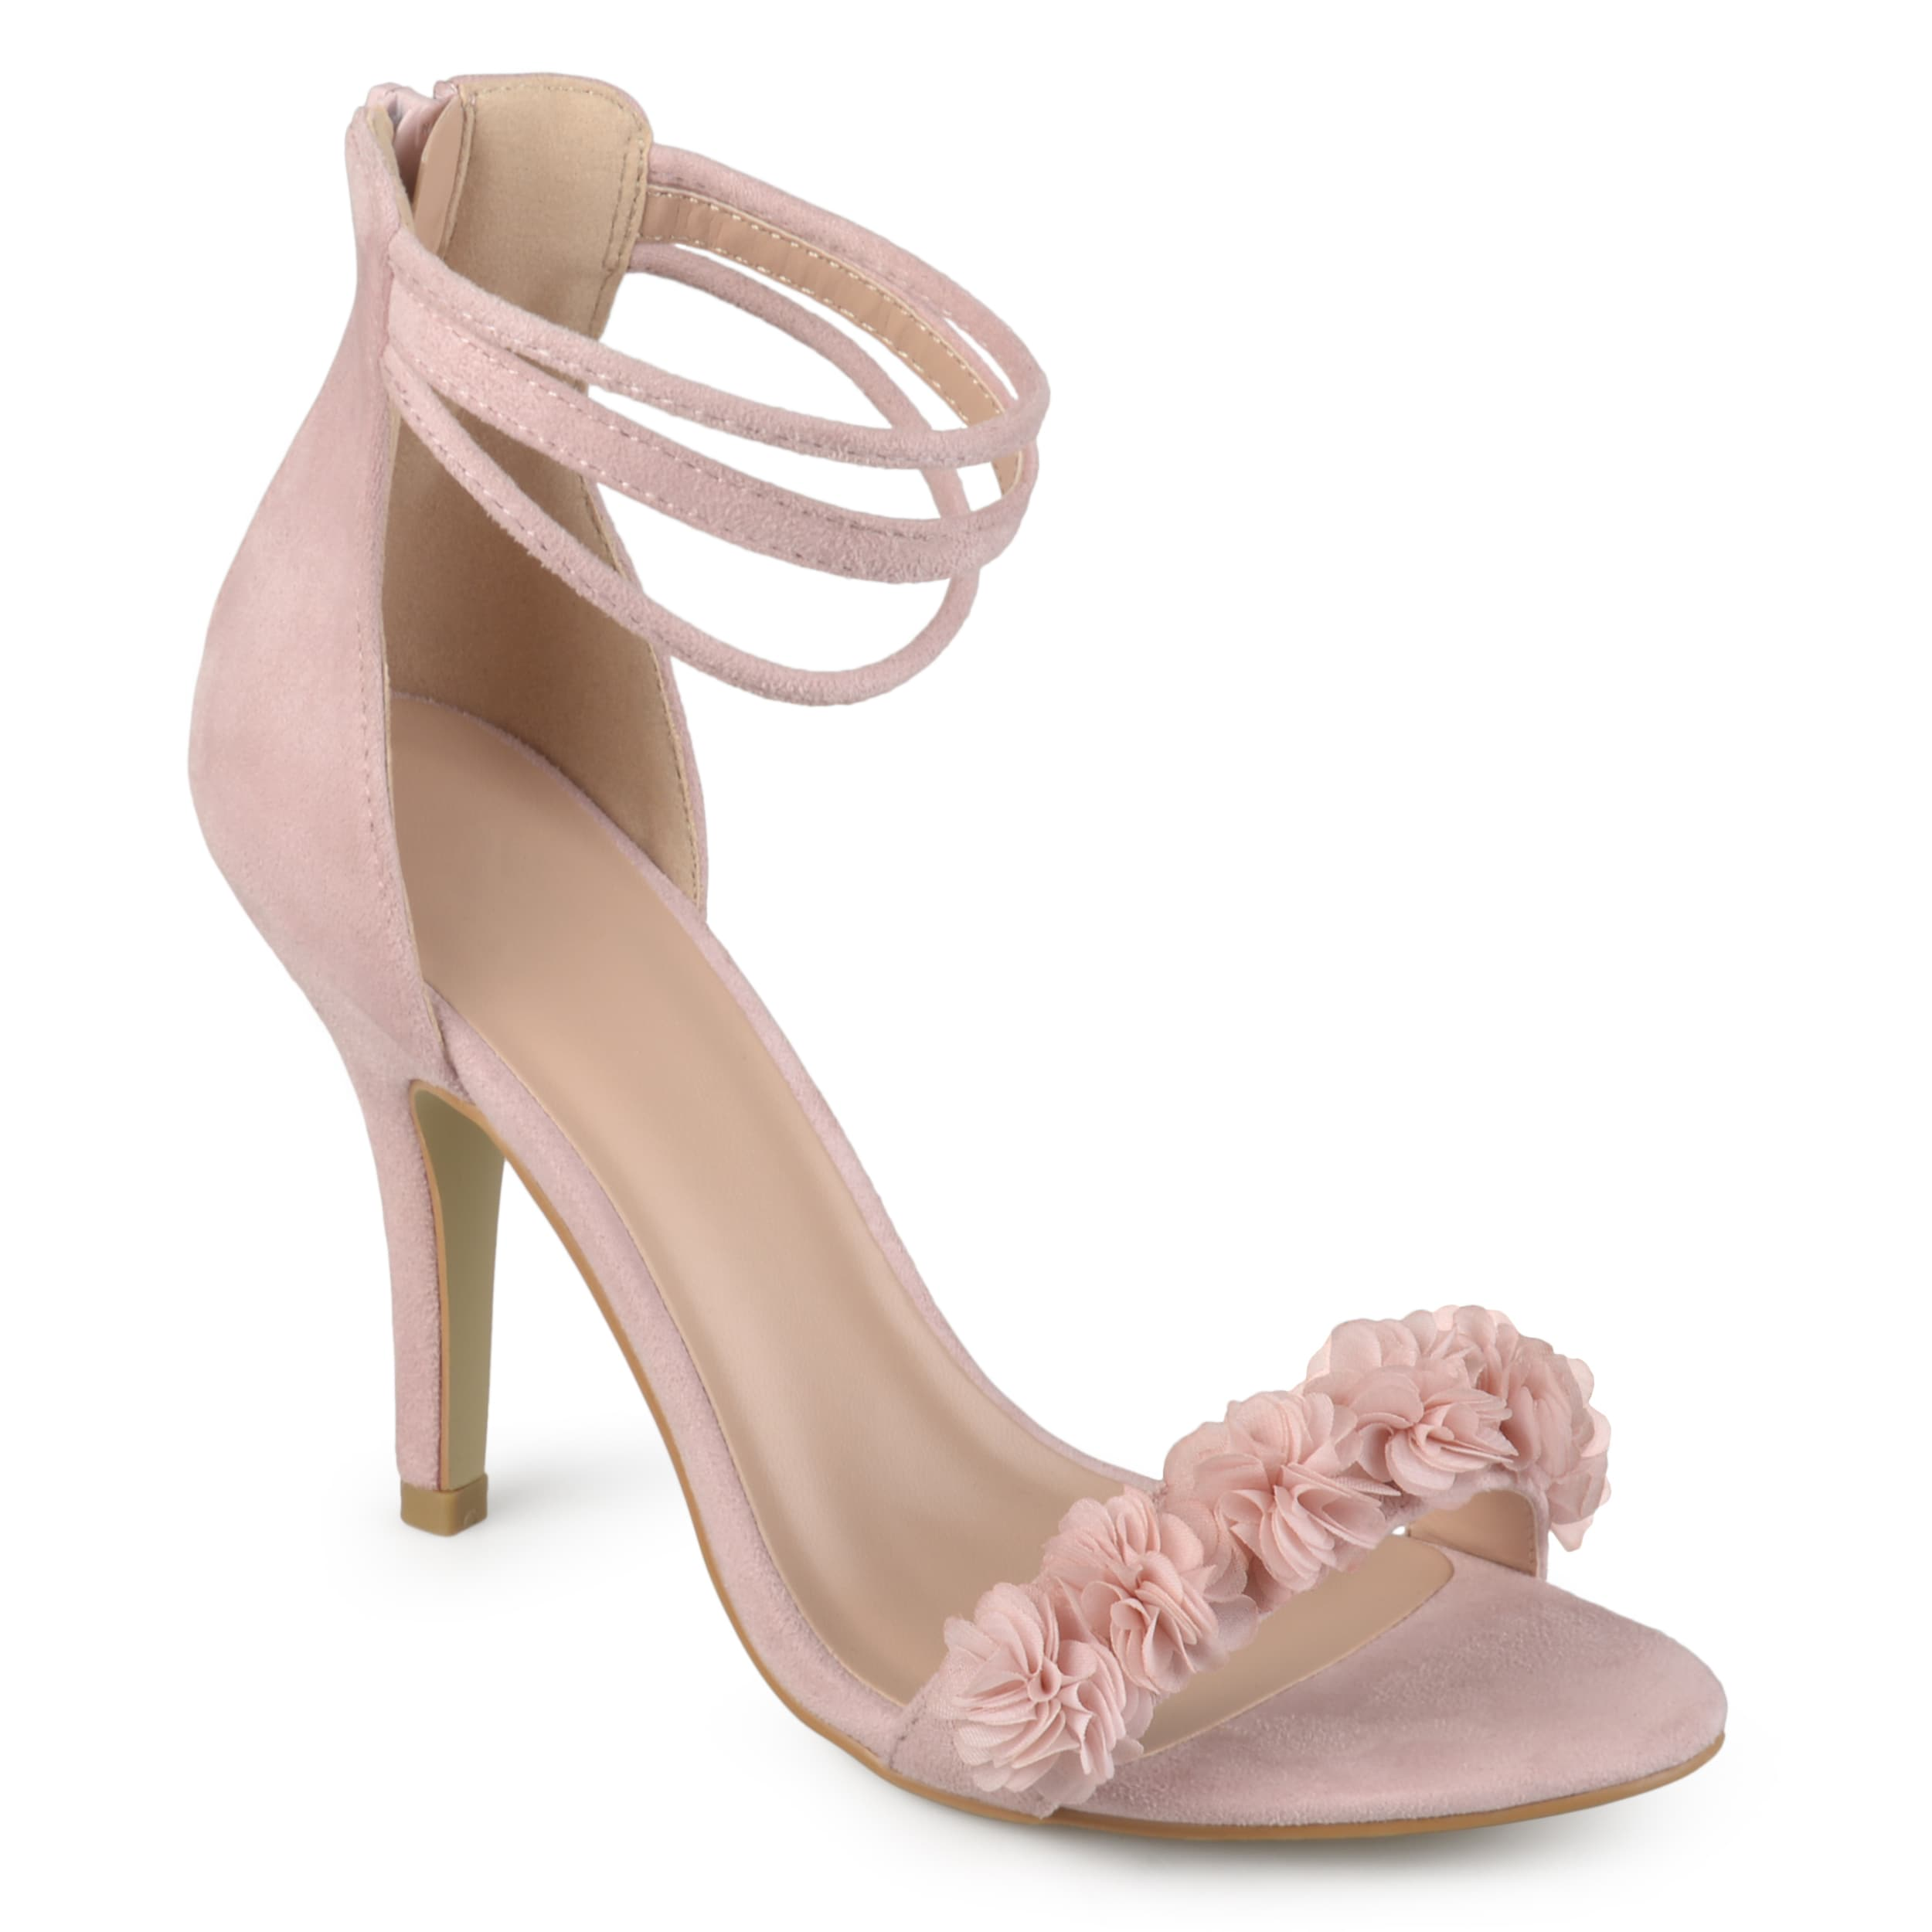 Shop Journee Collection Womens Eloise Ankle Strap Flower High